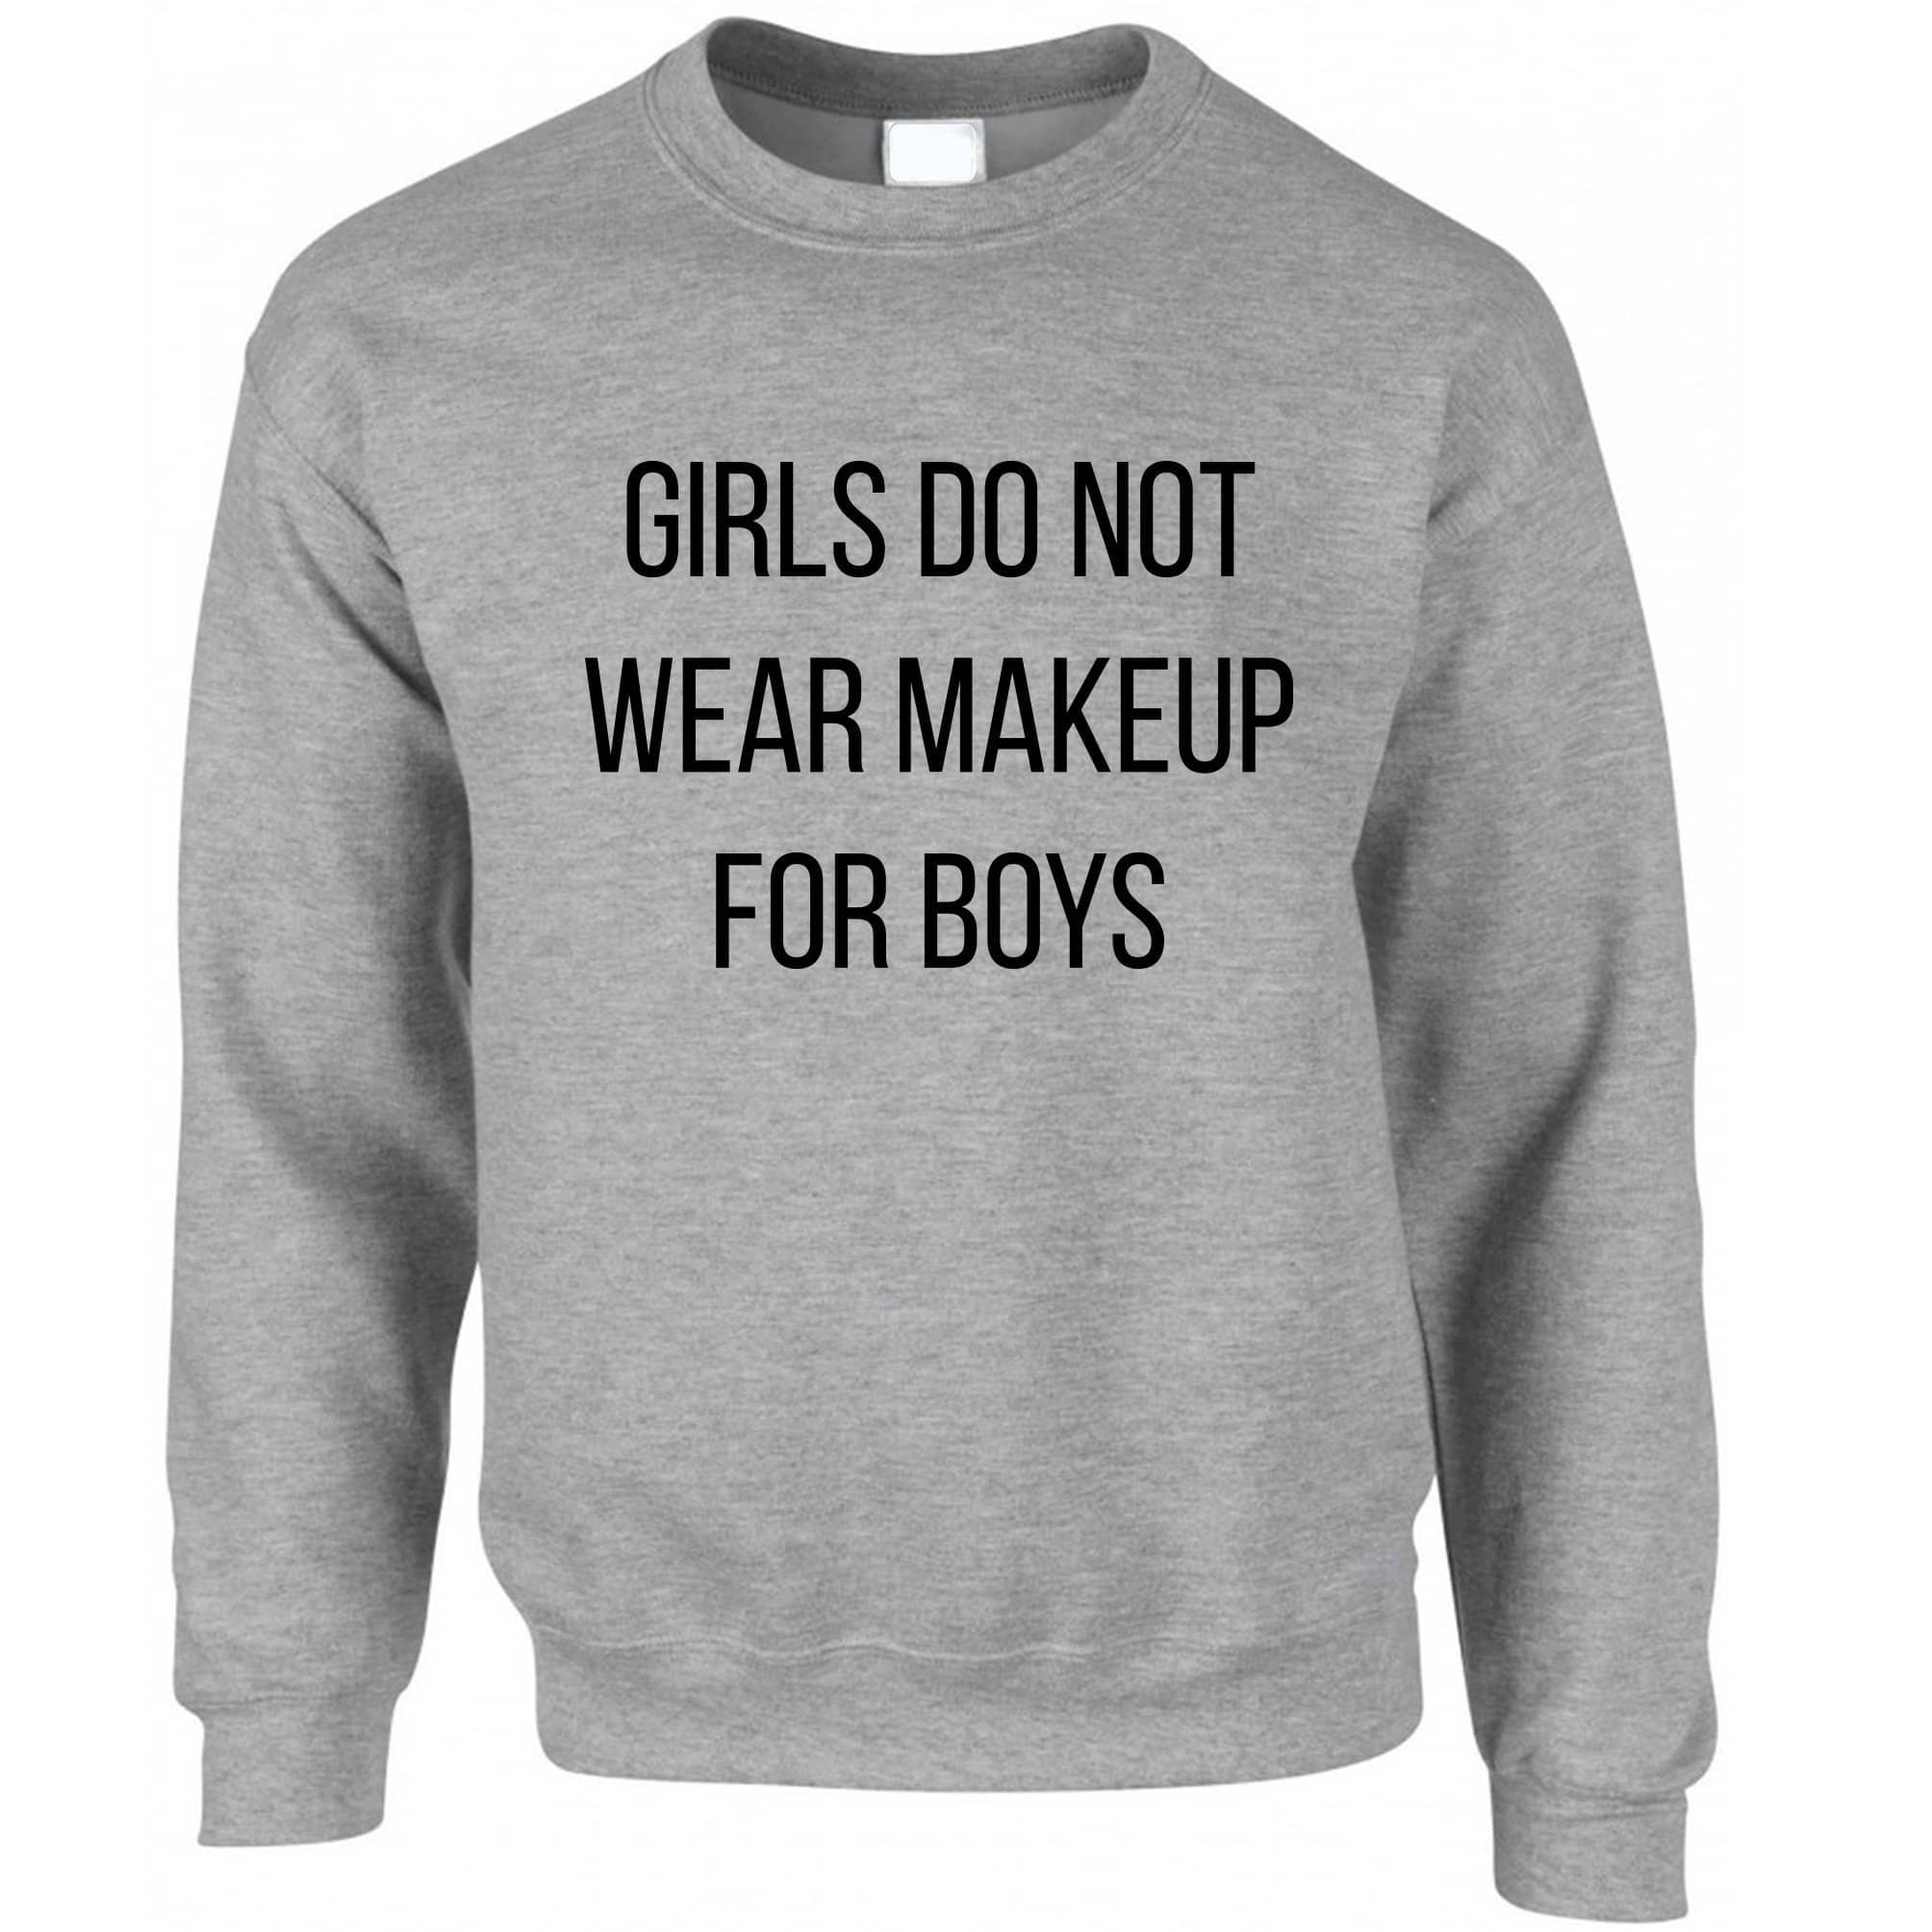 Feminist Jumper Girls Do Not Wear Makeup For Boys Sweatshirt Sweater